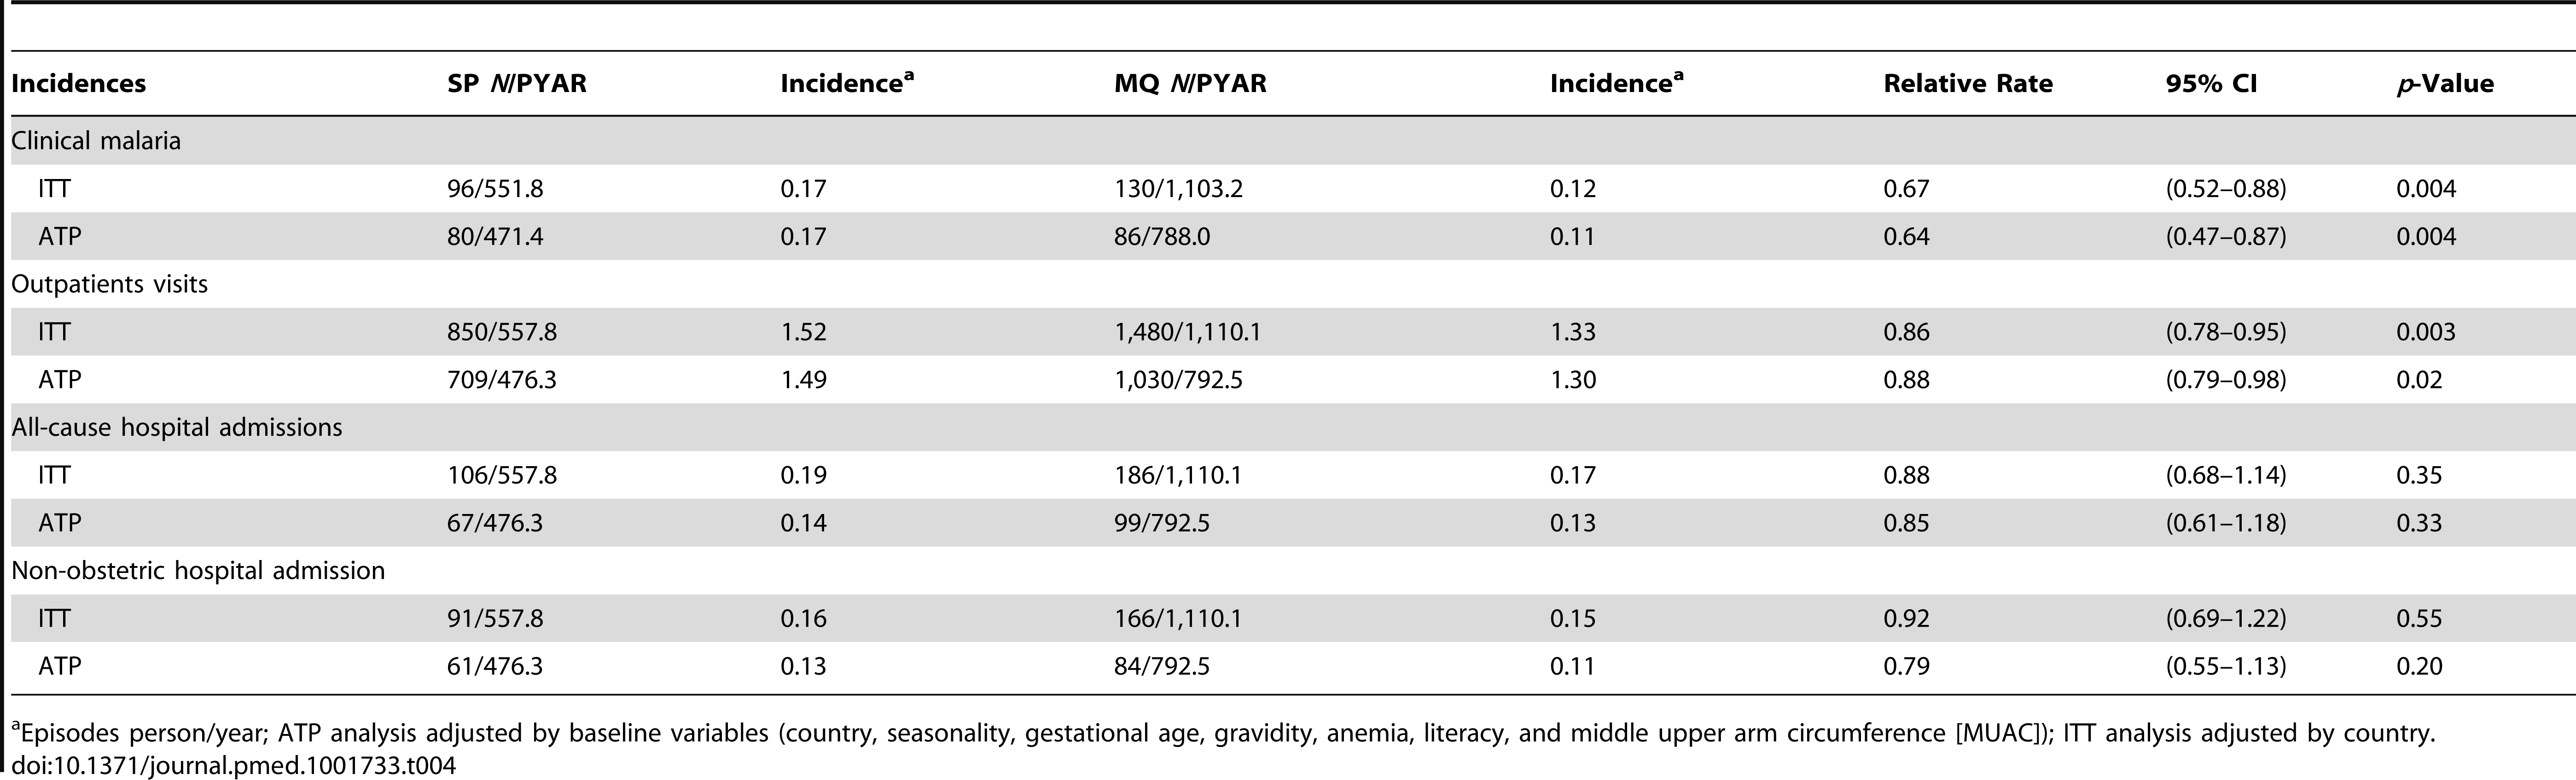 Incidence of clinical malaria, outpatients visits, and hospital admissions.